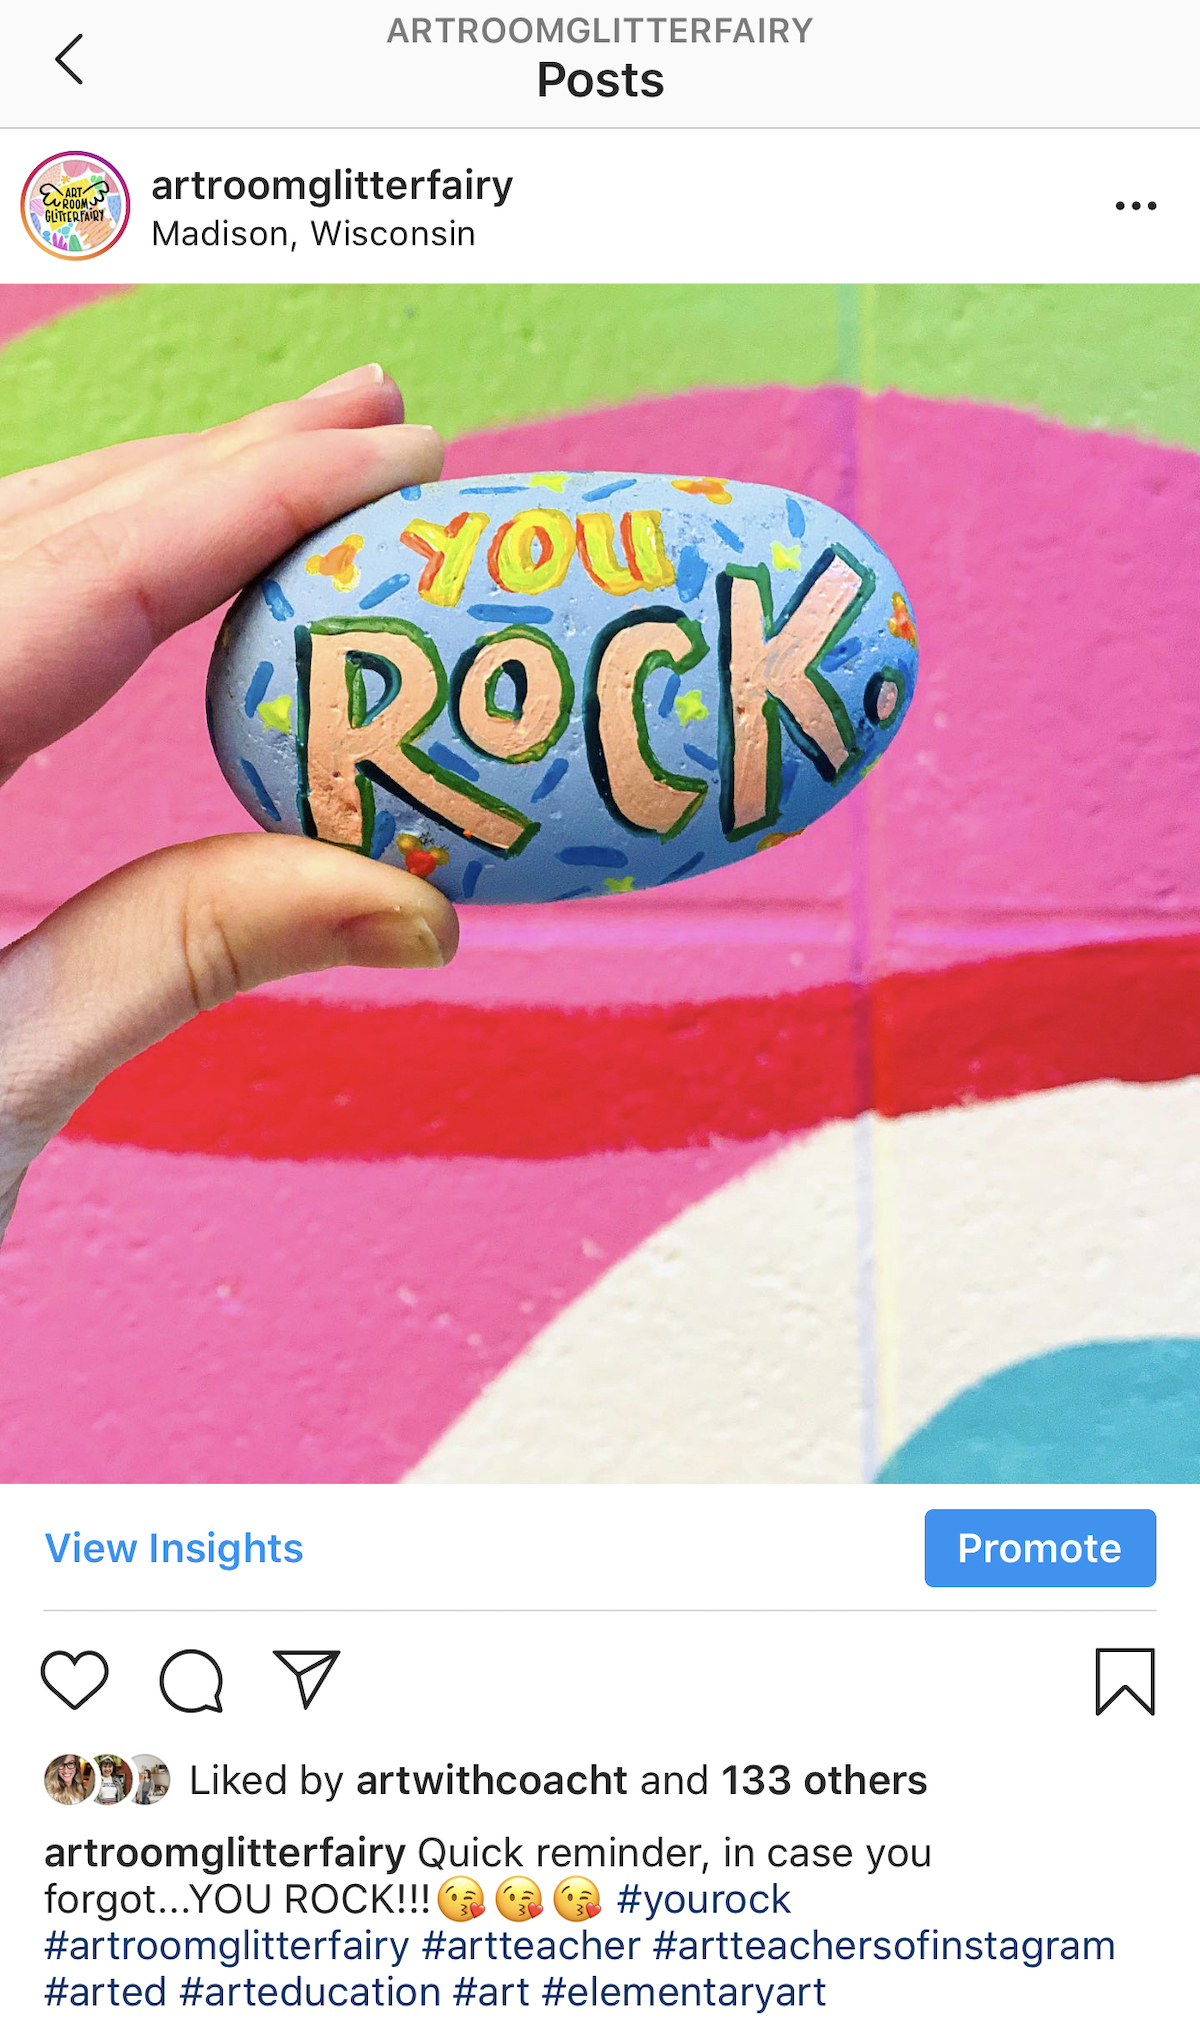 image of rock with text